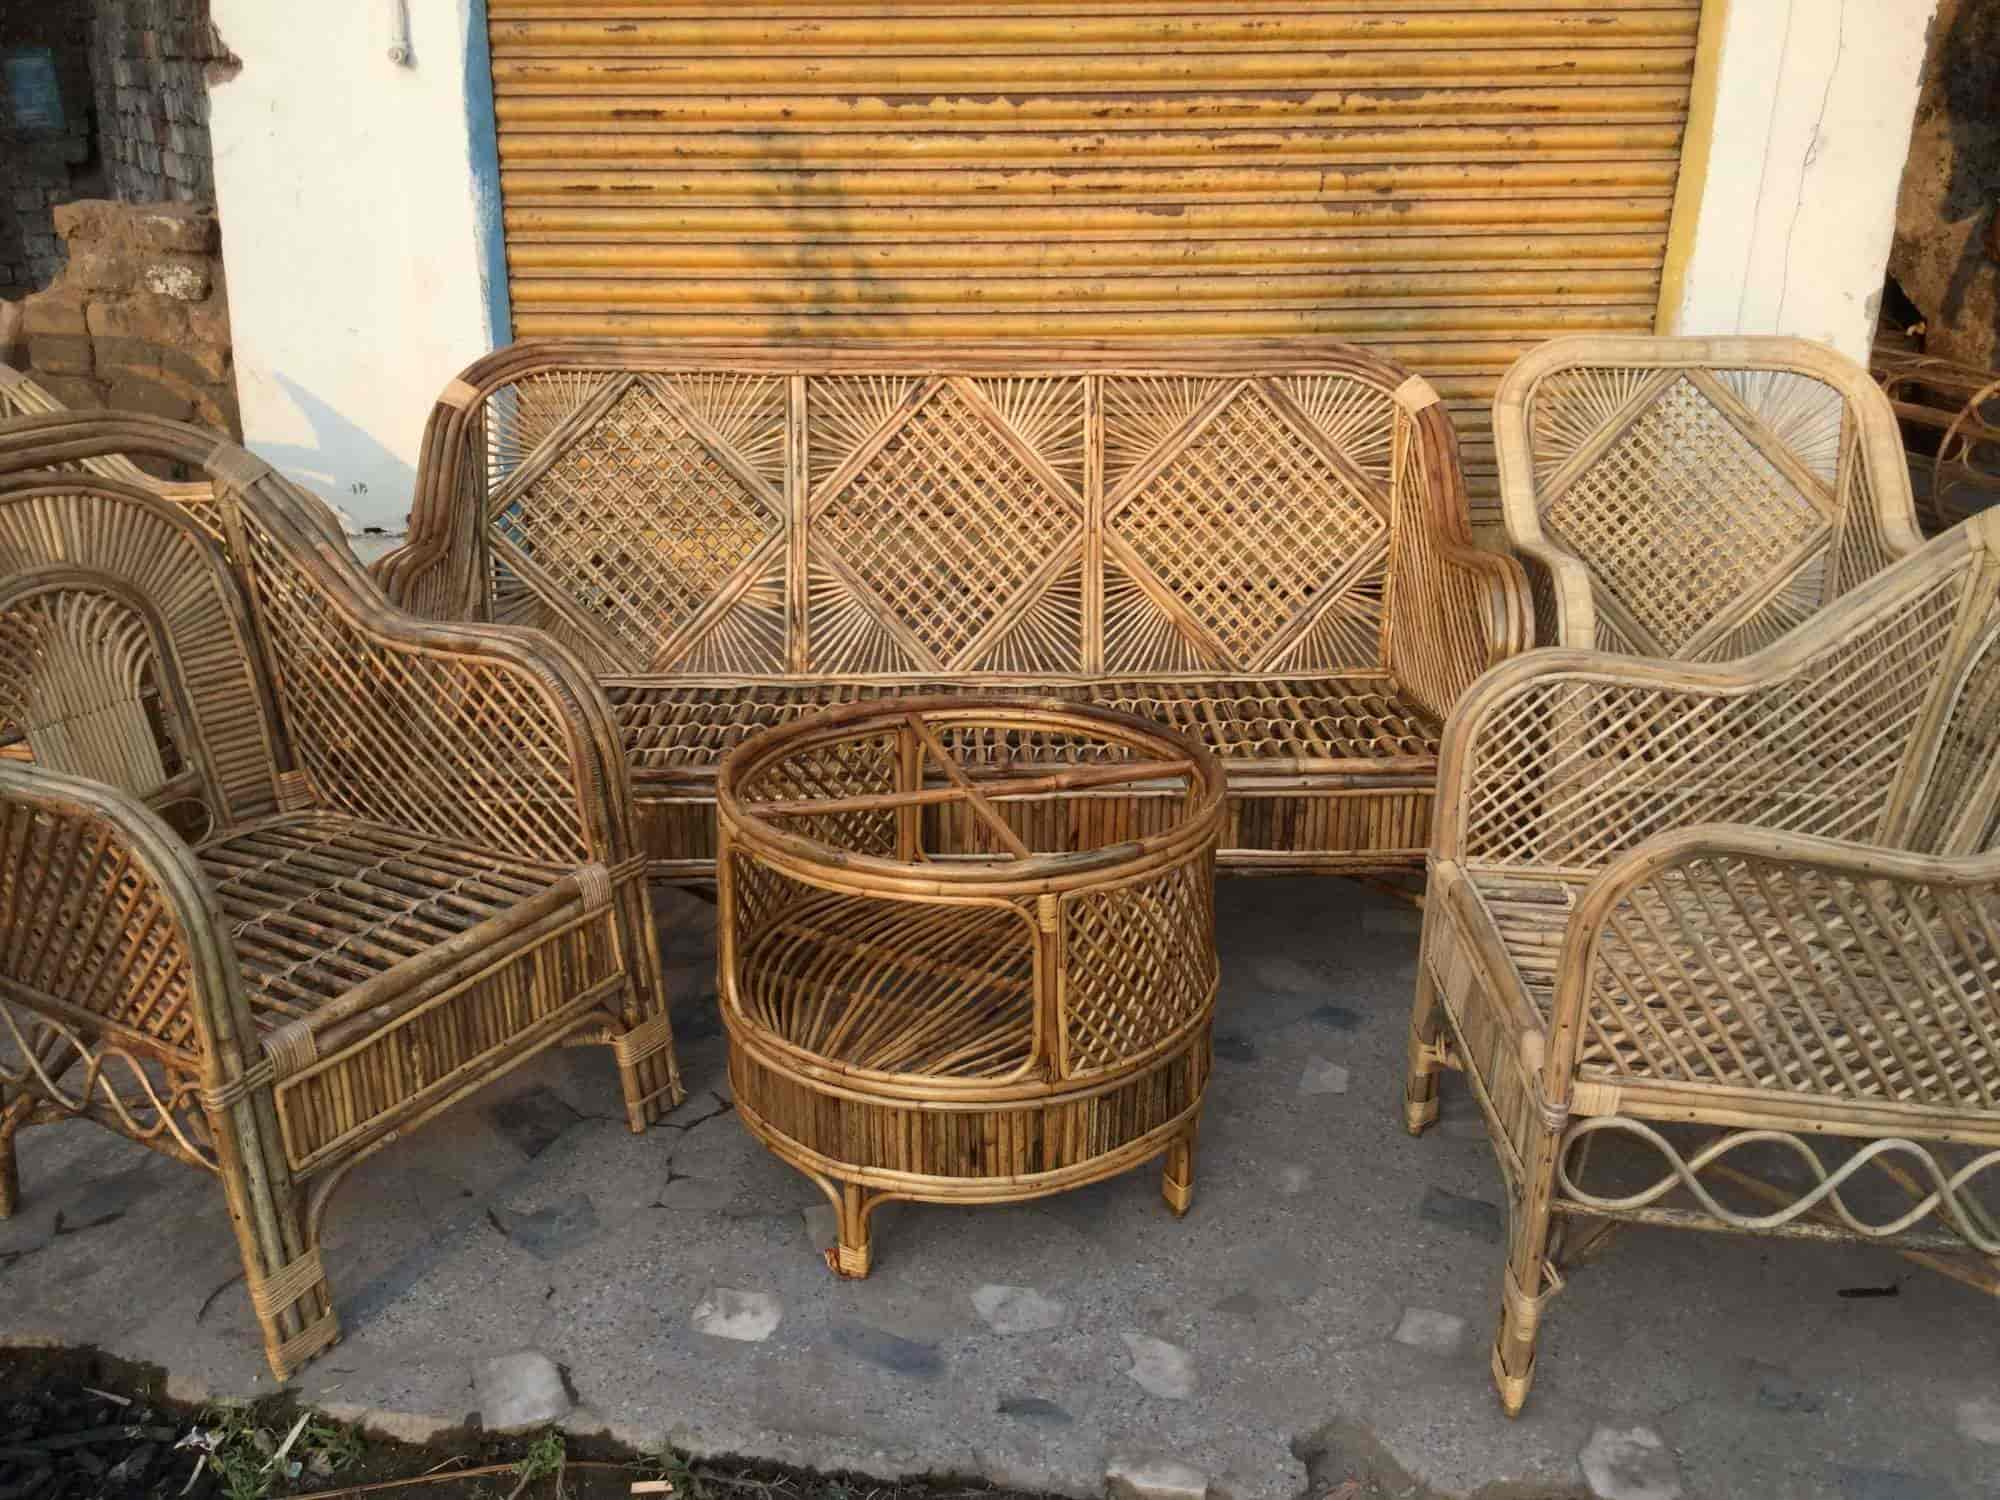 Indian Cane House Chair Manufacturers In Bilaspur Chhattisgarh Justdial